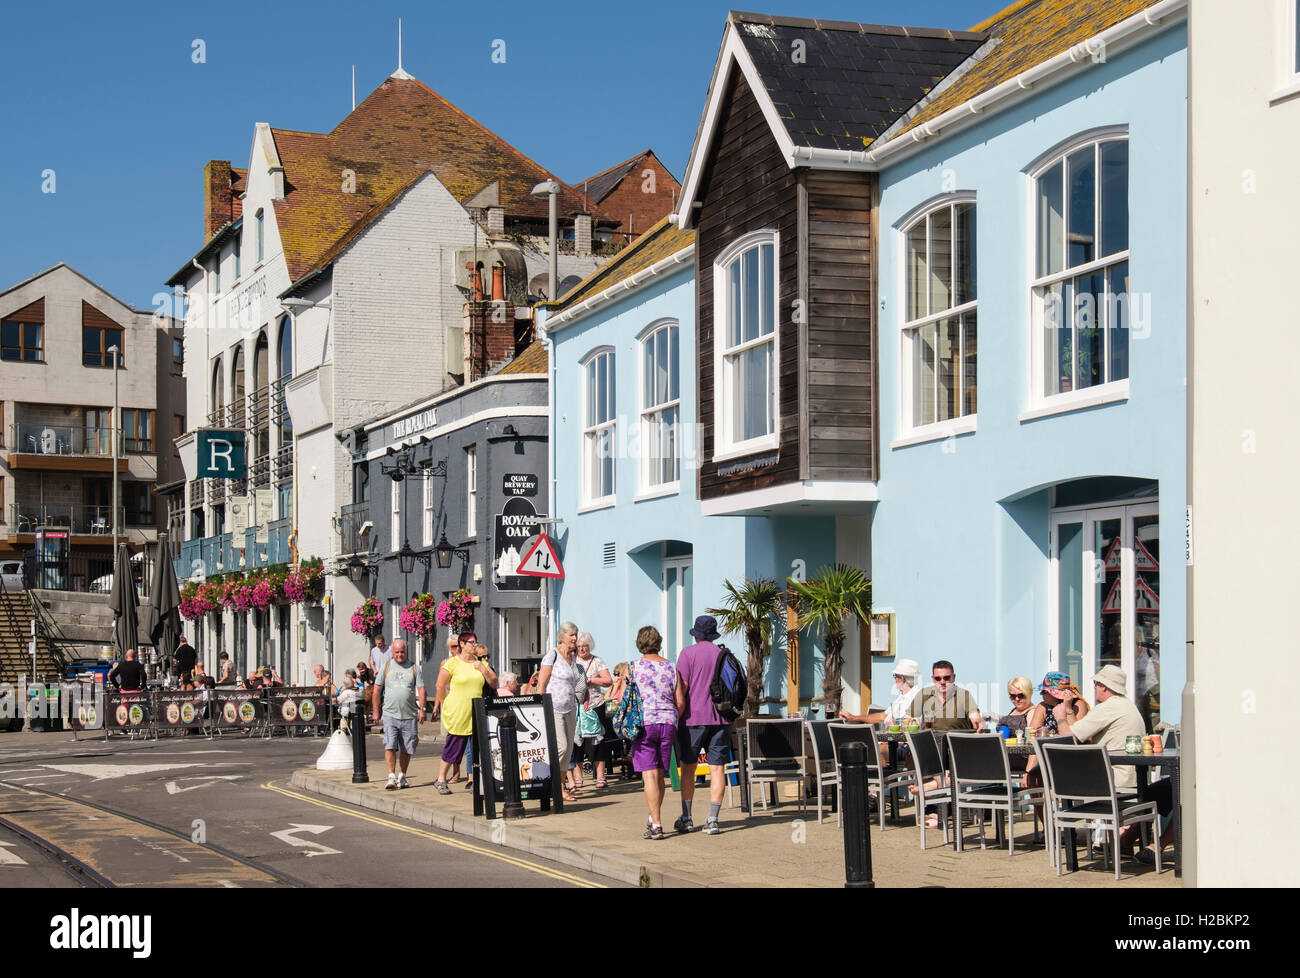 People dining outside The Ship Inn and Royal Oak pubs in September sunshine. Custom House Quay, Weymouth, Dorset, - Stock Image